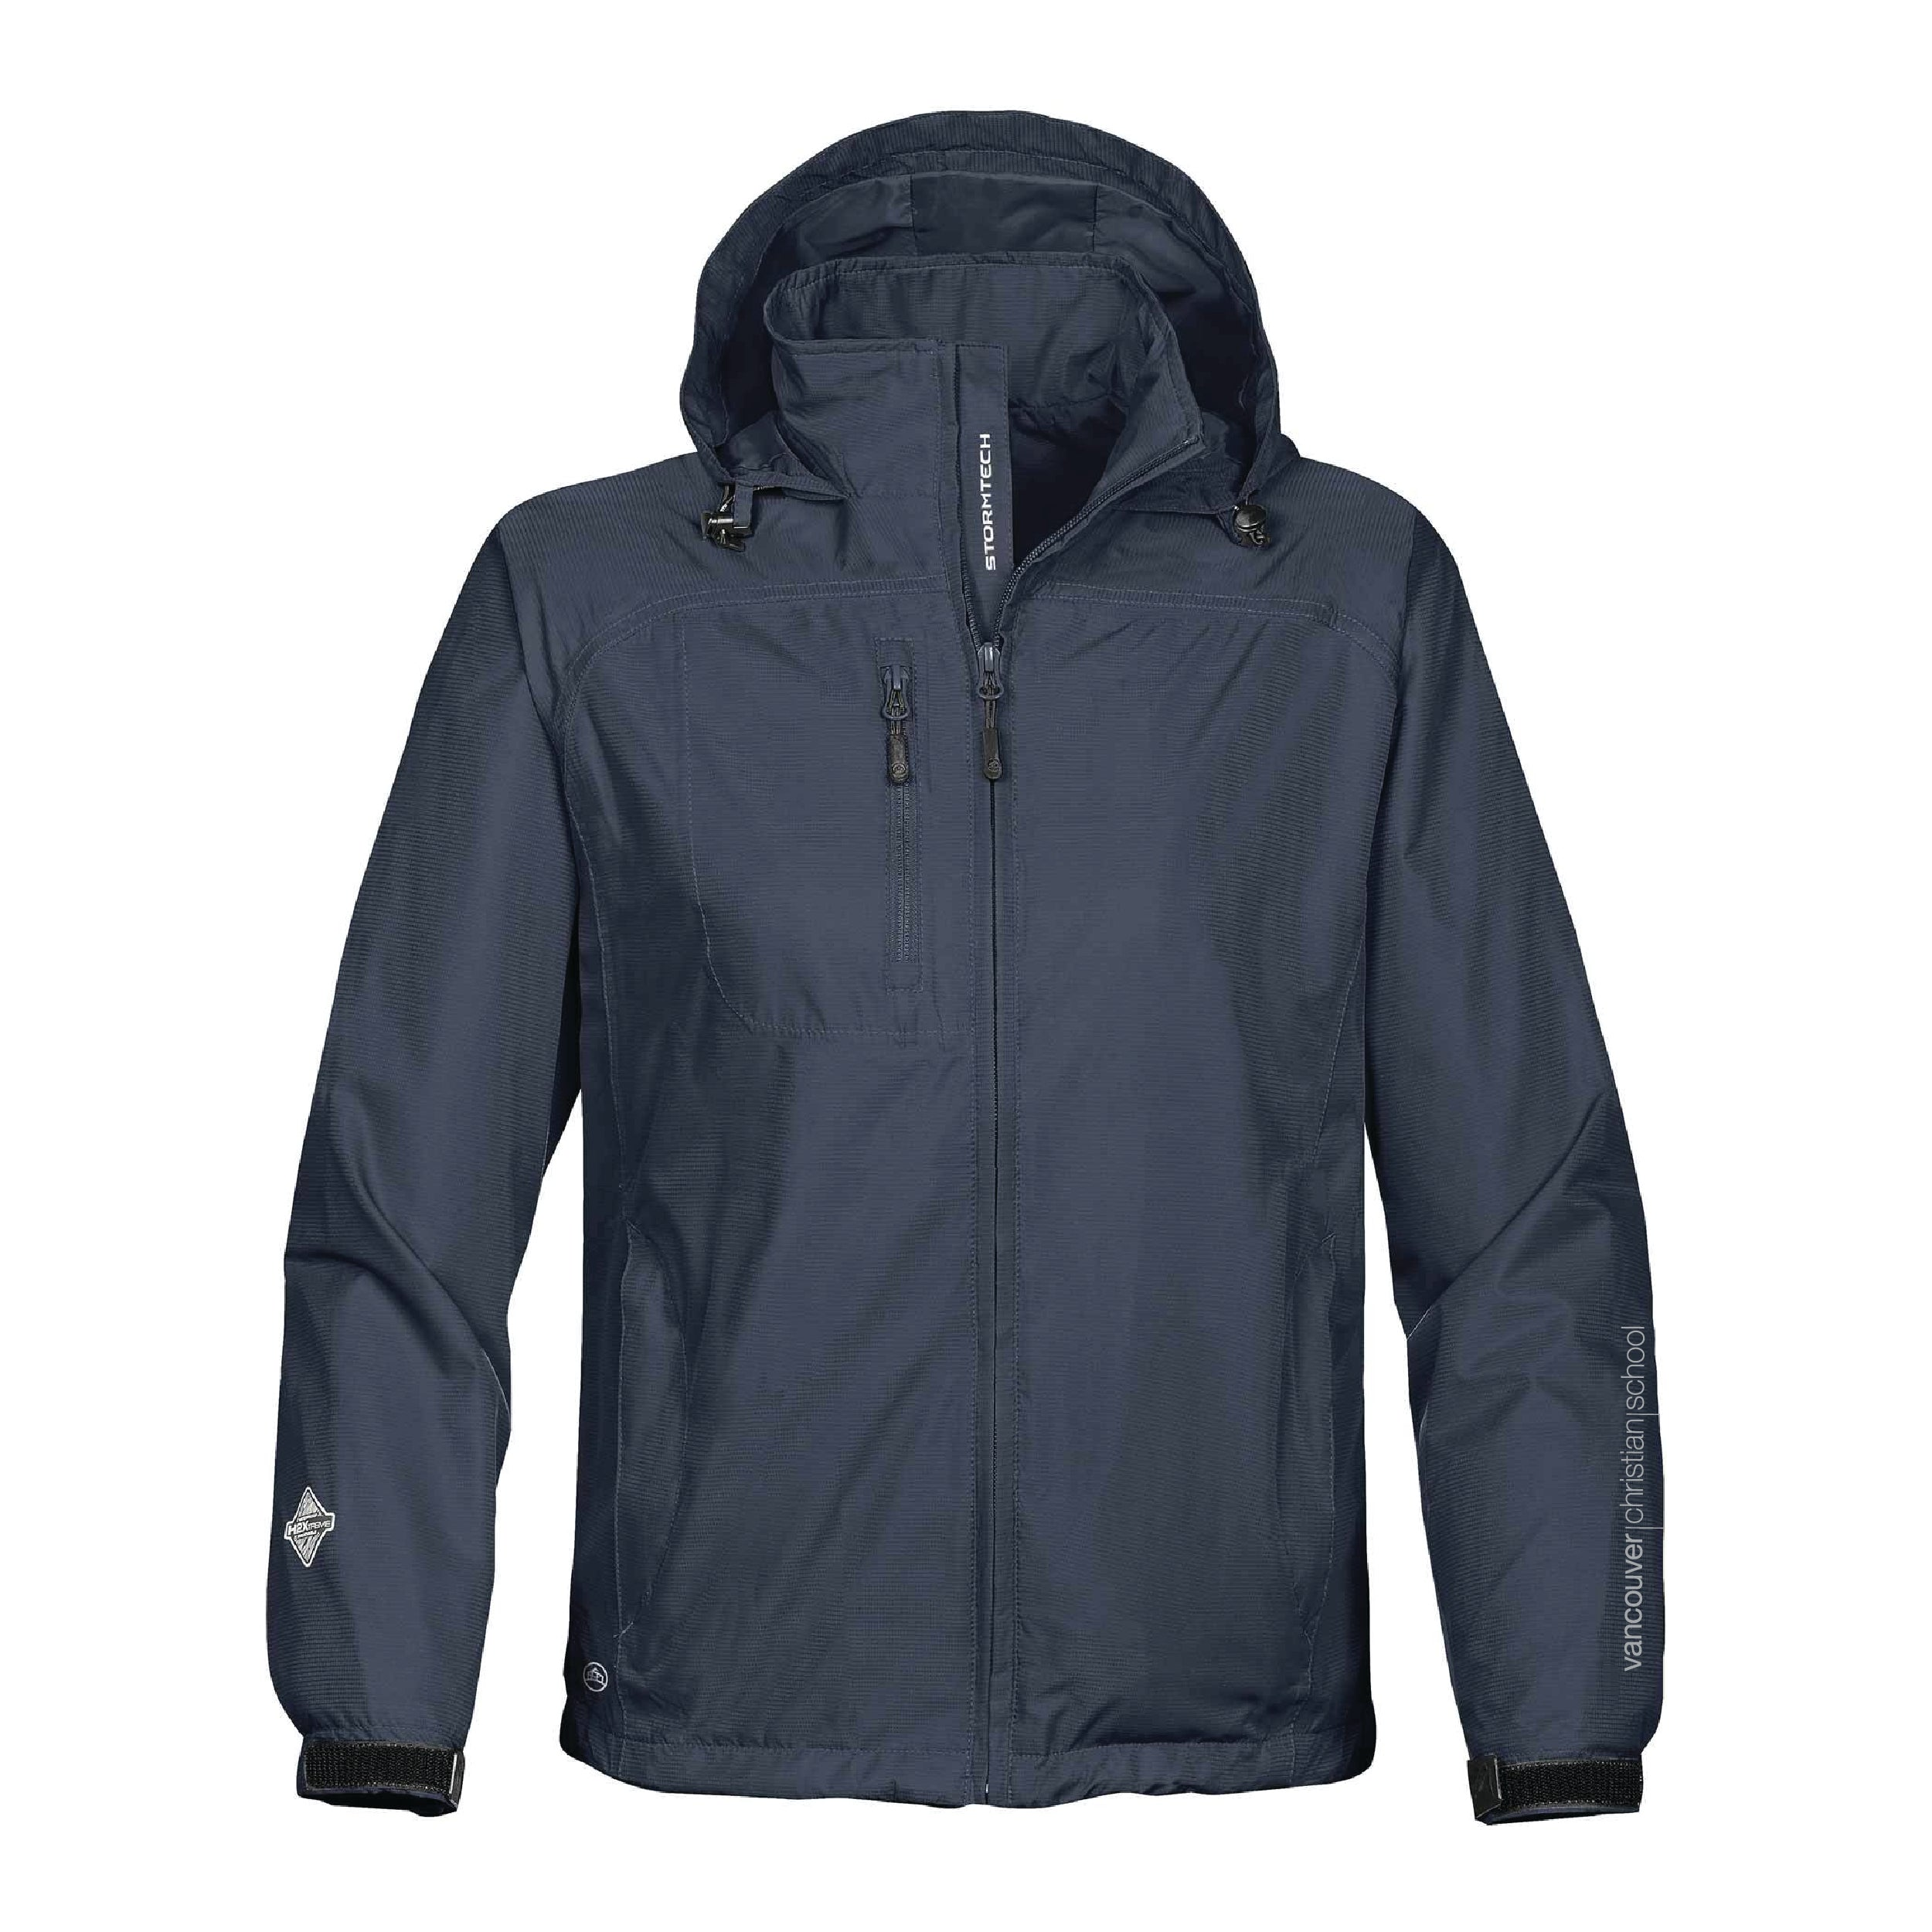 VCS - Men's Stratus Lightweight Shell Jacket